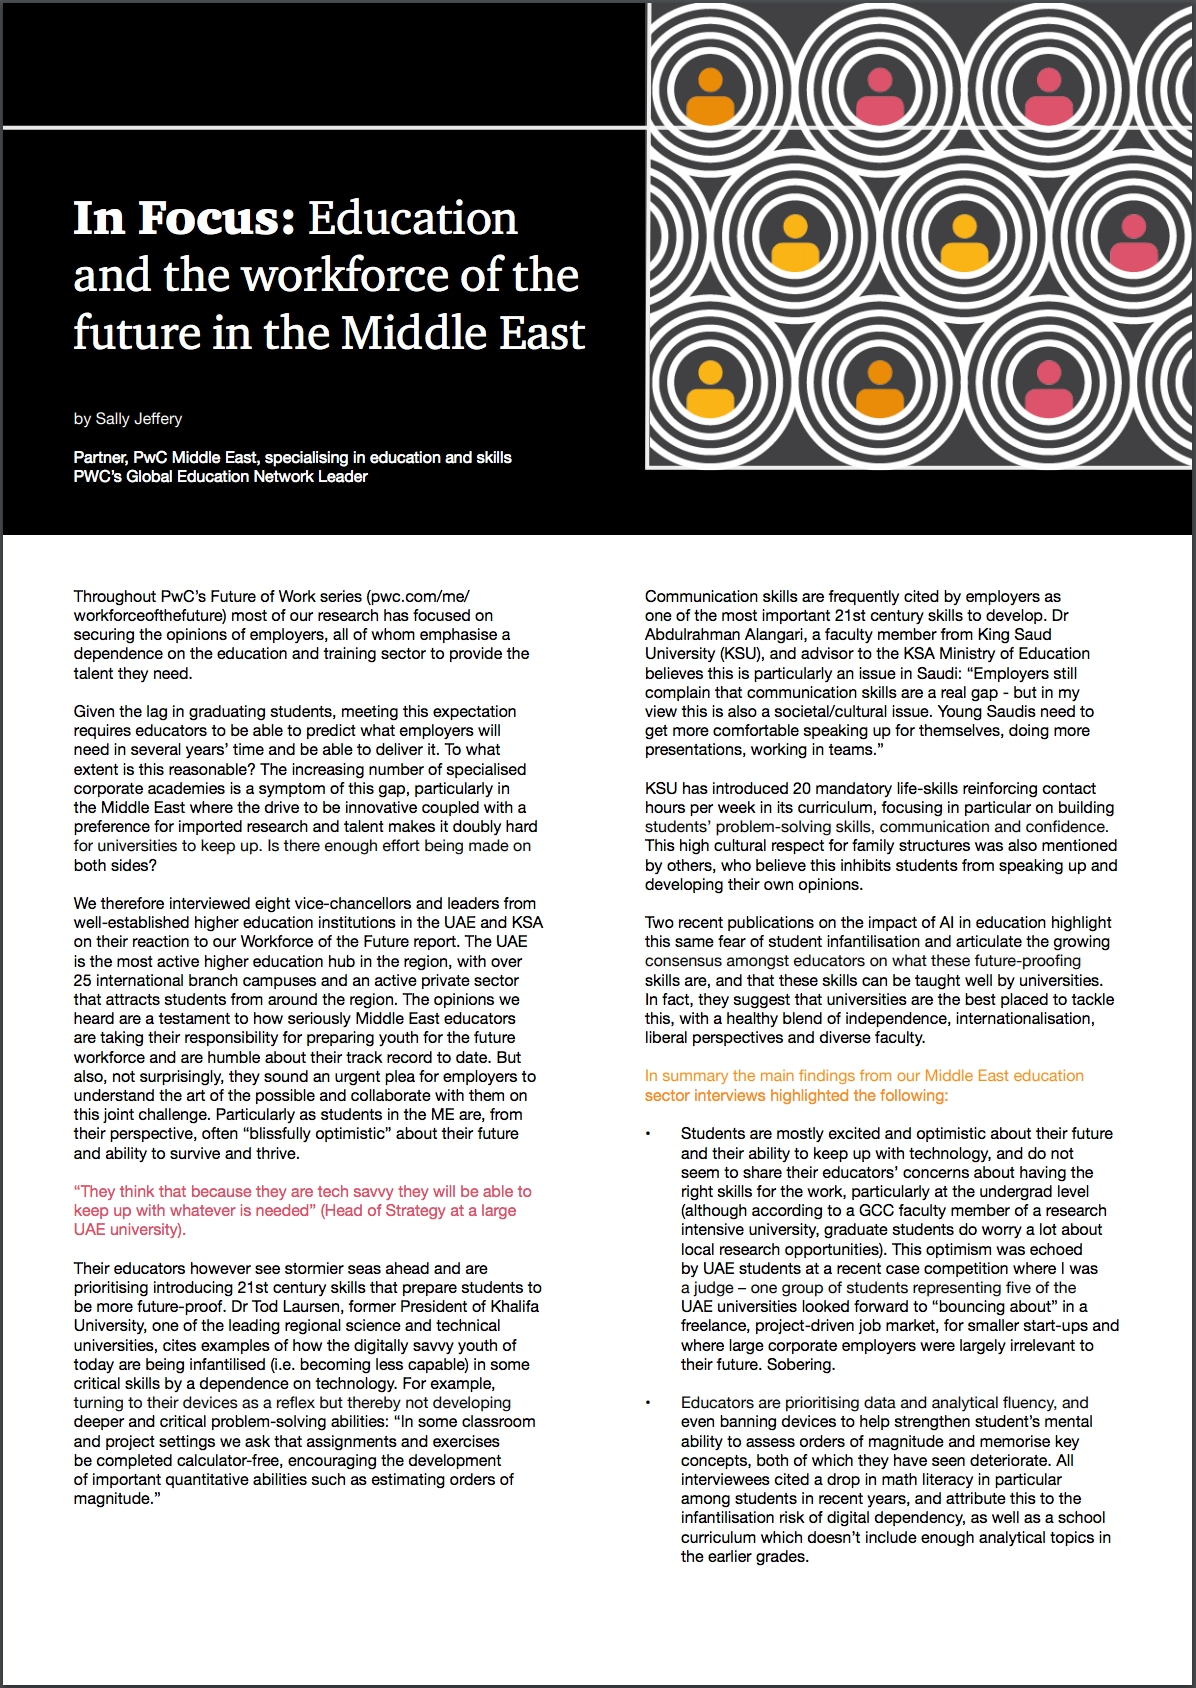 In Focus: Education and the workforce of the future in the Middle